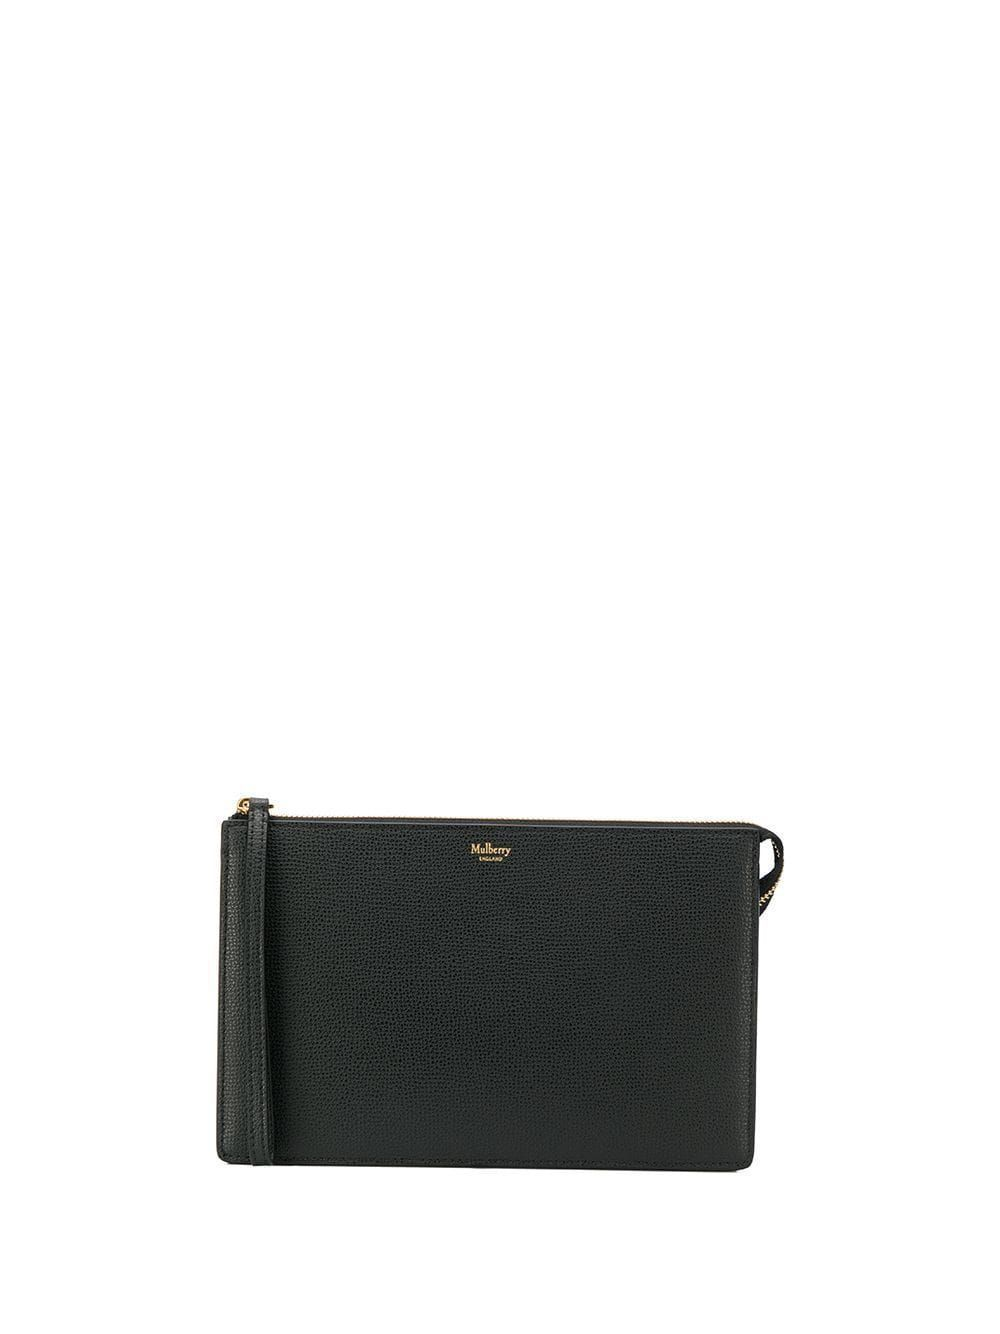 MULBERRY MULBERRY TEXTURED LEATHER CLUTCH - BLACK. #mulberry #bags #shoulder bags #clutch #leather #hand bags #mulberrybag MULBERRY MULBERRY TEXTURED LEATHER CLUTCH - BLACK. #mulberry #bags #shoulder bags #clutch #leather #hand bags #mulberrybag MULBERRY MULBERRY TEXTURED LEATHER CLUTCH - BLACK. #mulberry #bags #shoulder bags #clutch #leather #hand bags #mulberrybag MULBERRY MULBERRY TEXTURED LEATHER CLUTCH - BLACK. #mulberry #bags #shoulder bags #clutch #leather #hand bags #mulberrybag MULBERRY #mulberrybag